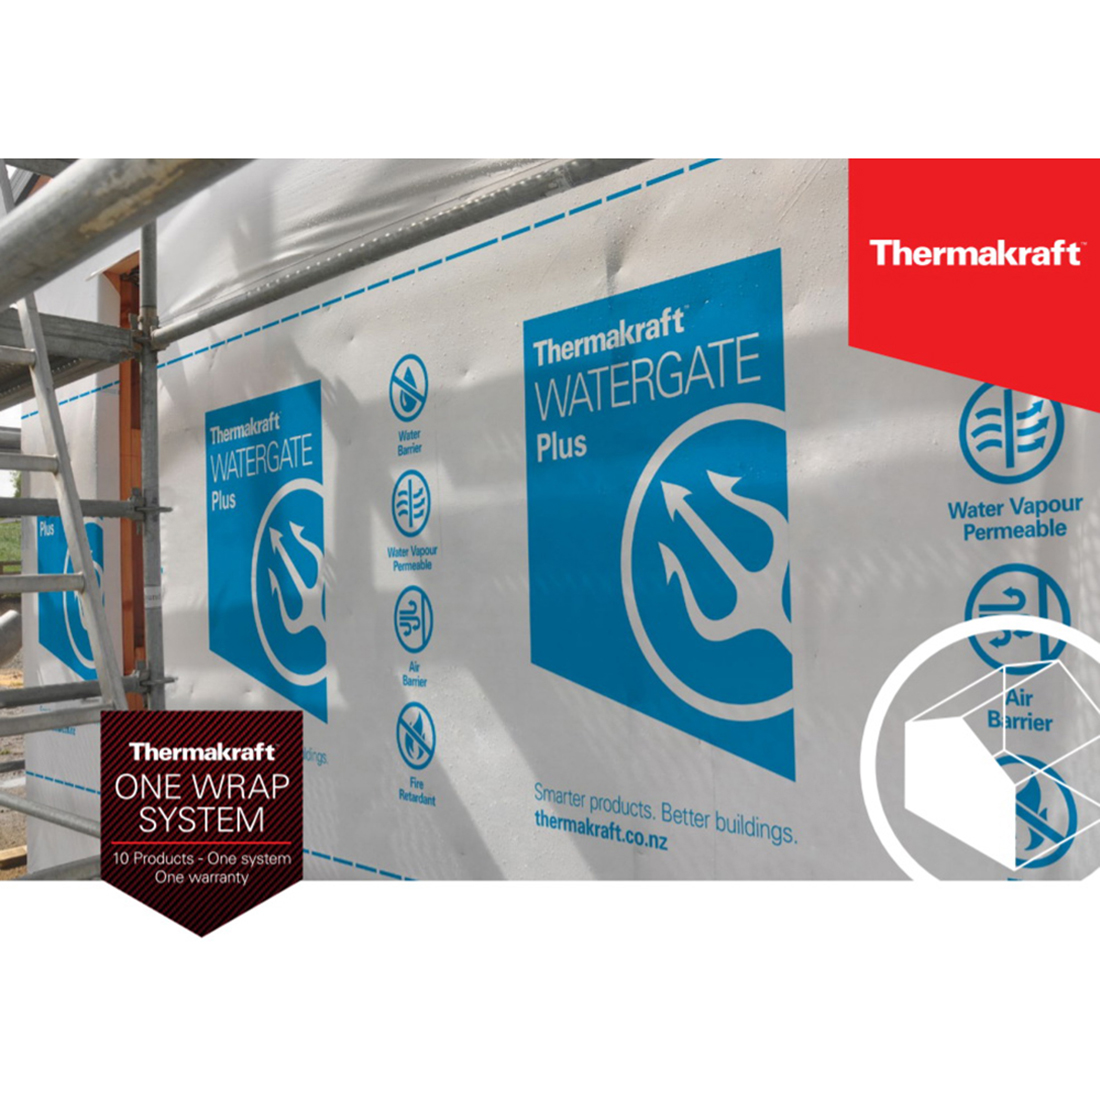 Watergate Plus Building Wrap OBG 2740mm x 36.5m 100m2